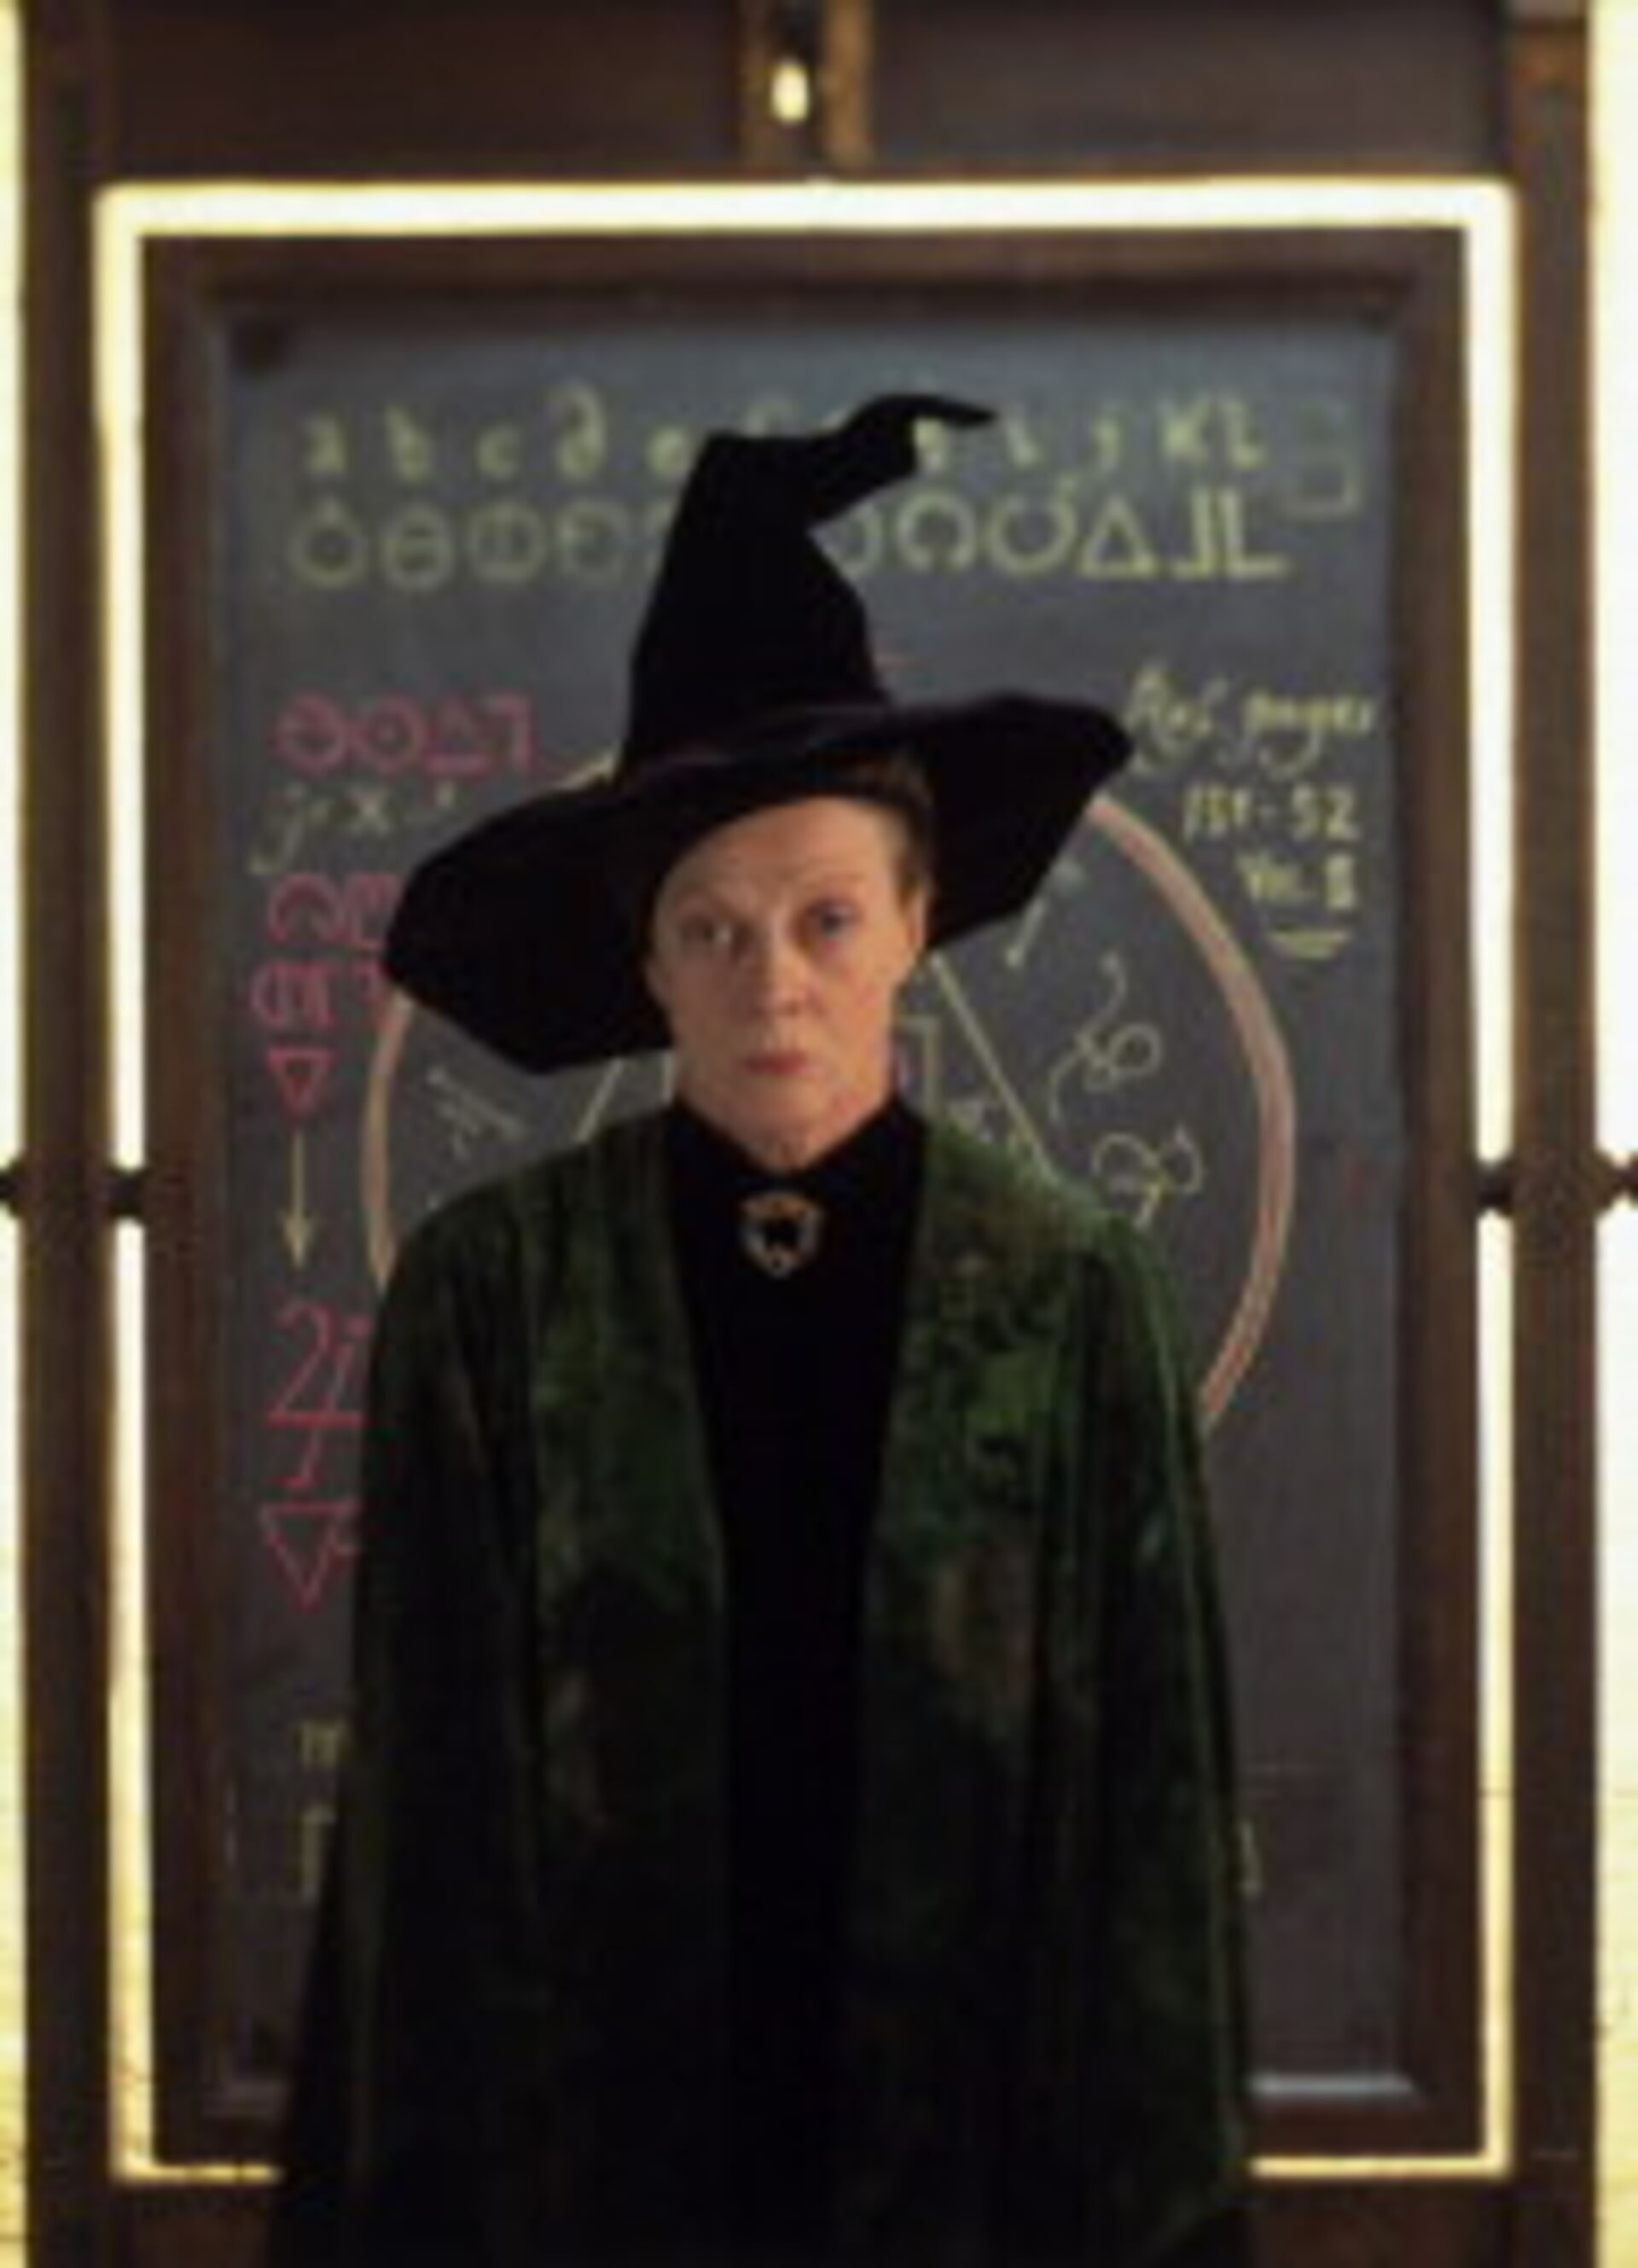 Harry Potter and the Sorcerer's Stone - Image 2